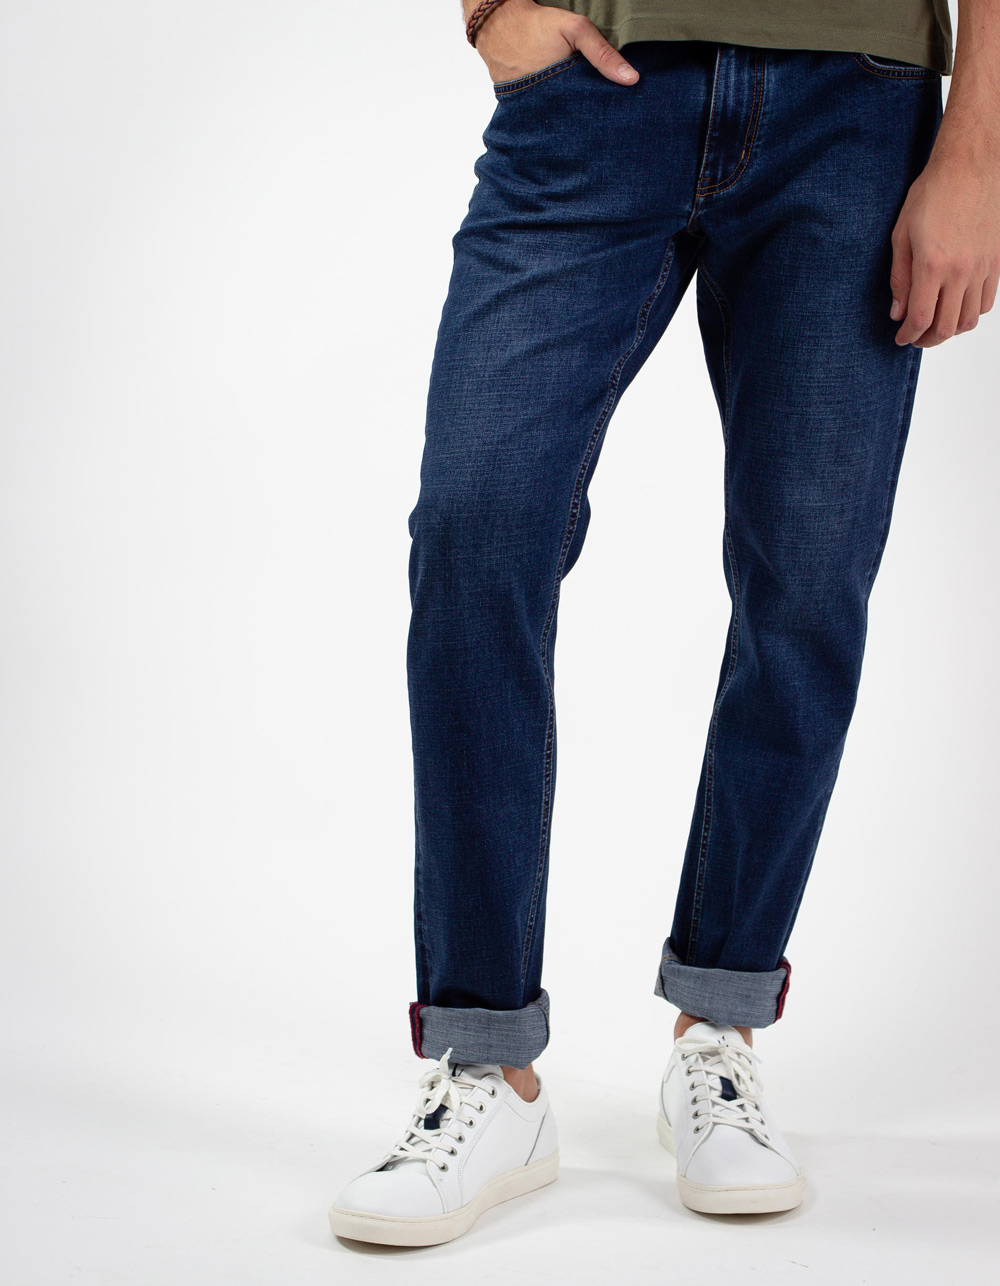 Denim dark navy jeans